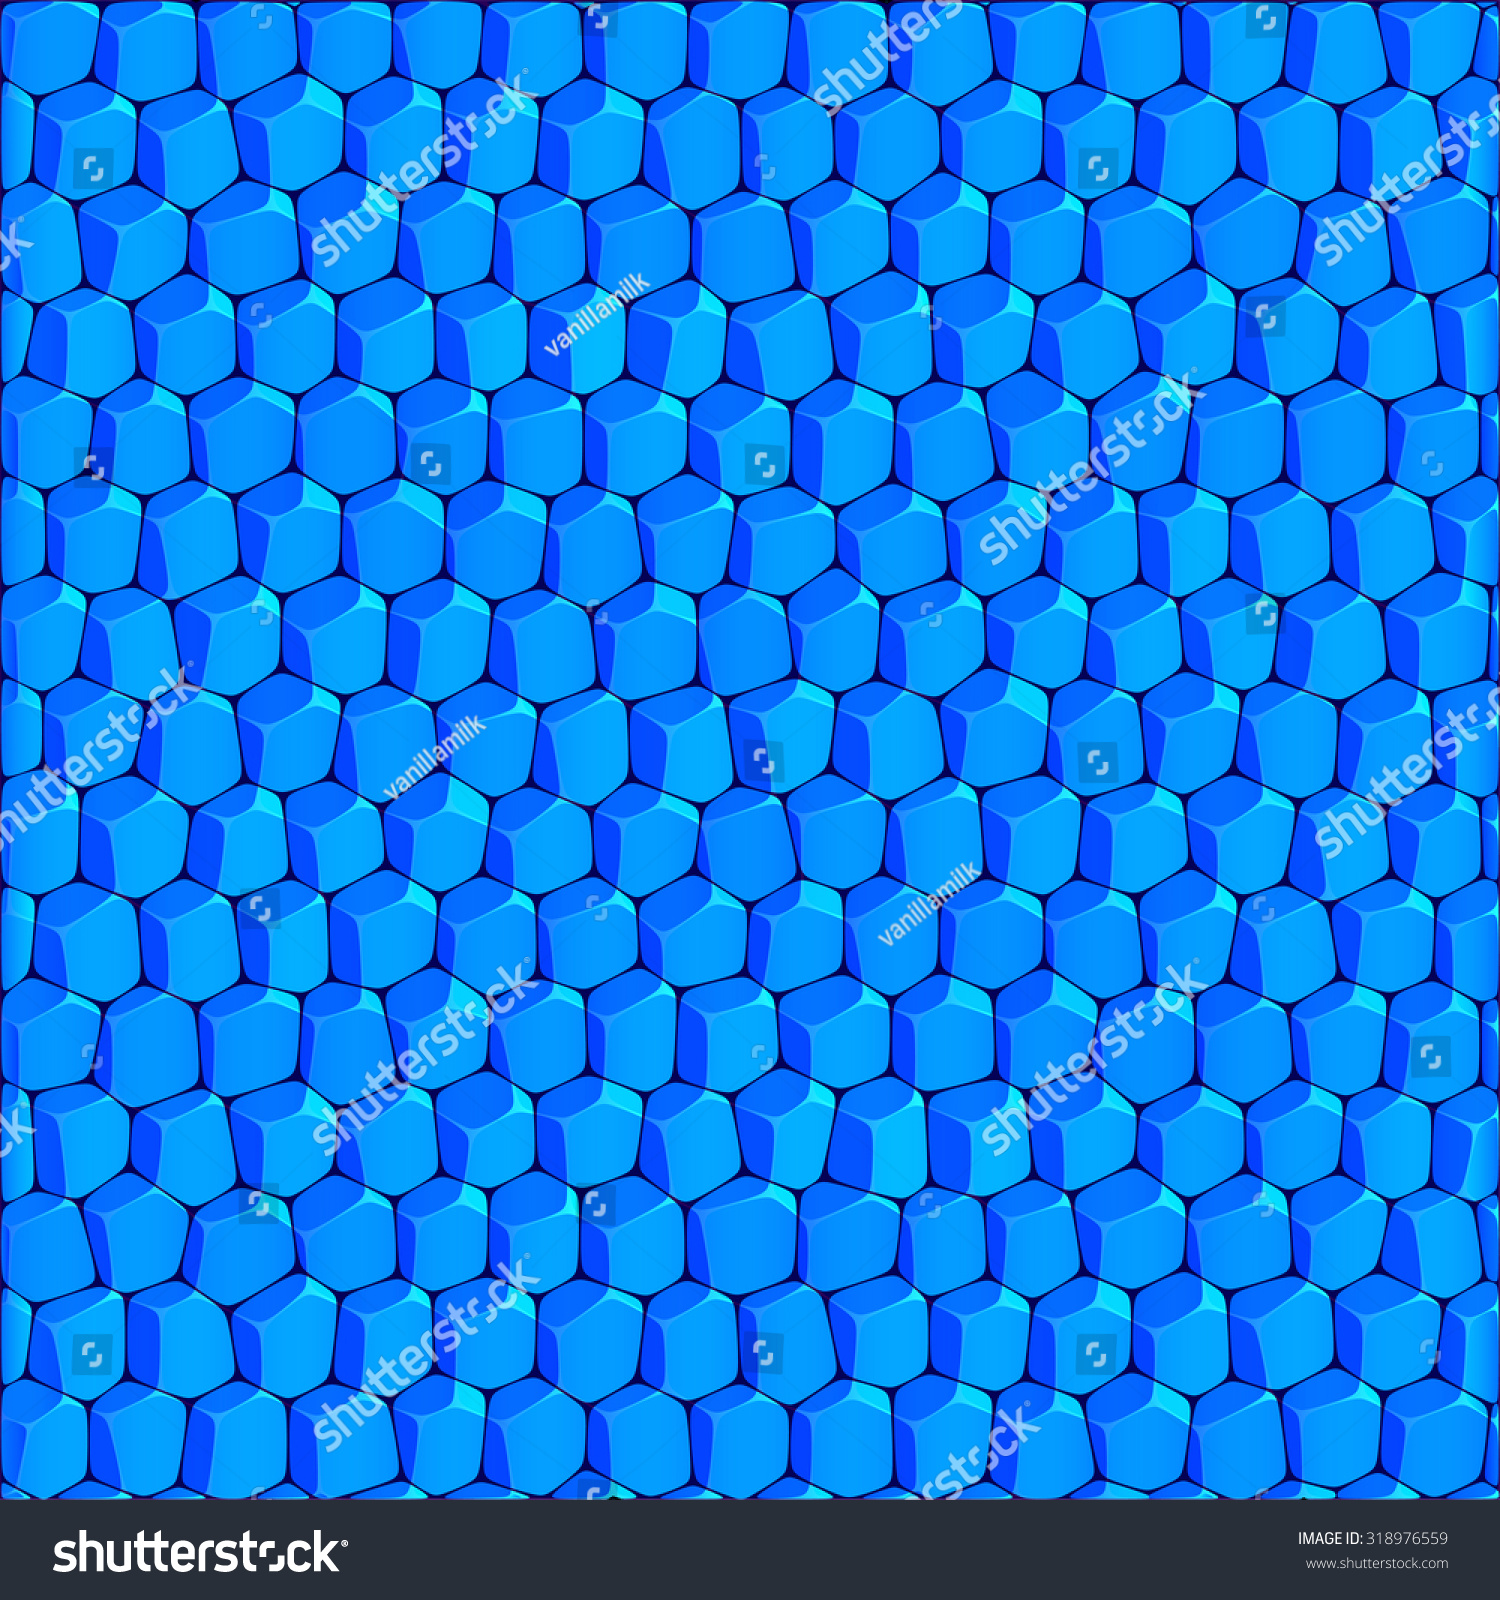 Abstract Geometric Honeycomb Structure Background Bright